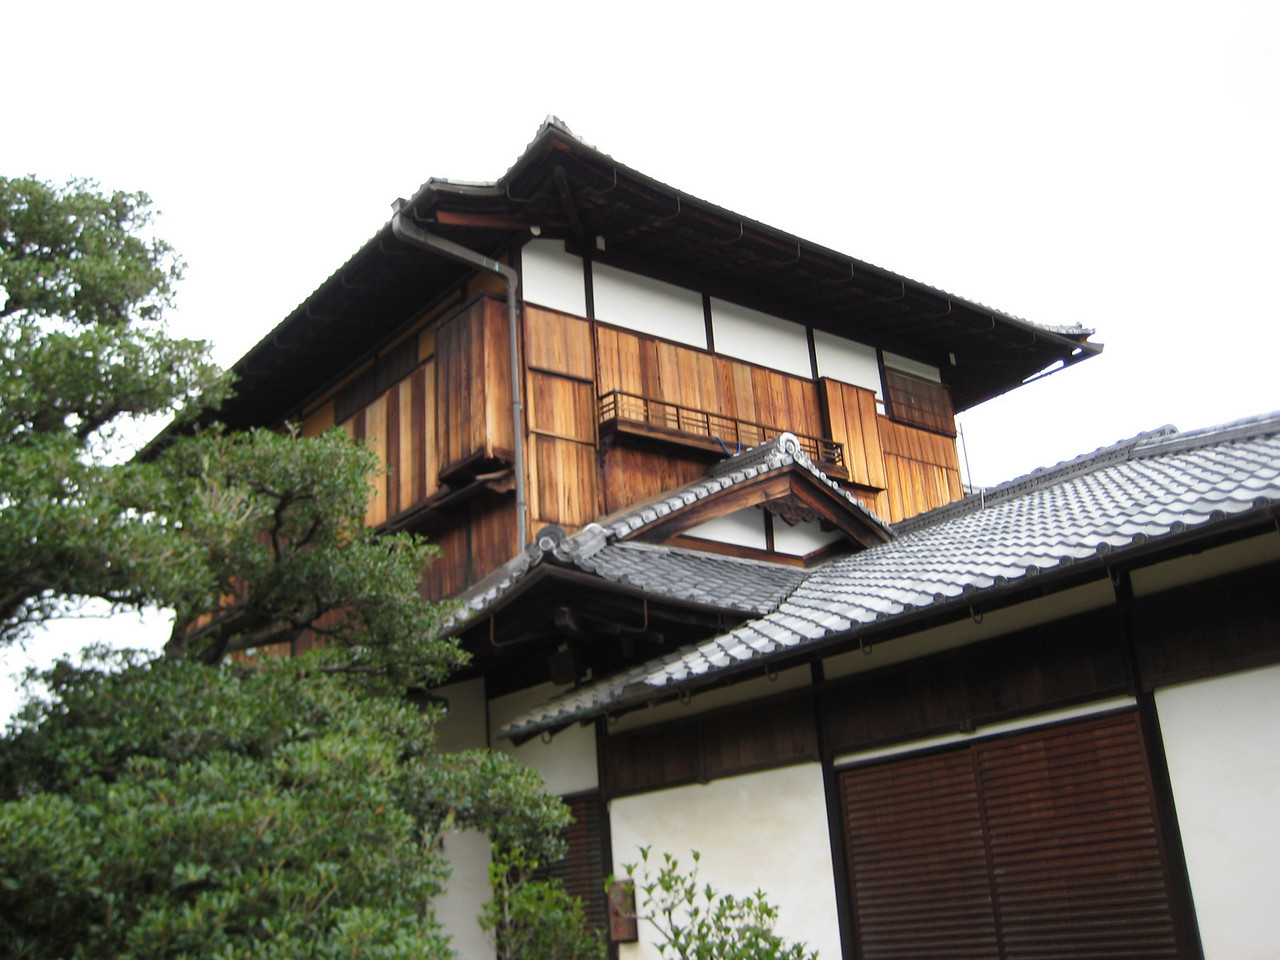 Looking up at the 3 story Otsune Palace, a wing off of the main Honmaru Palace.